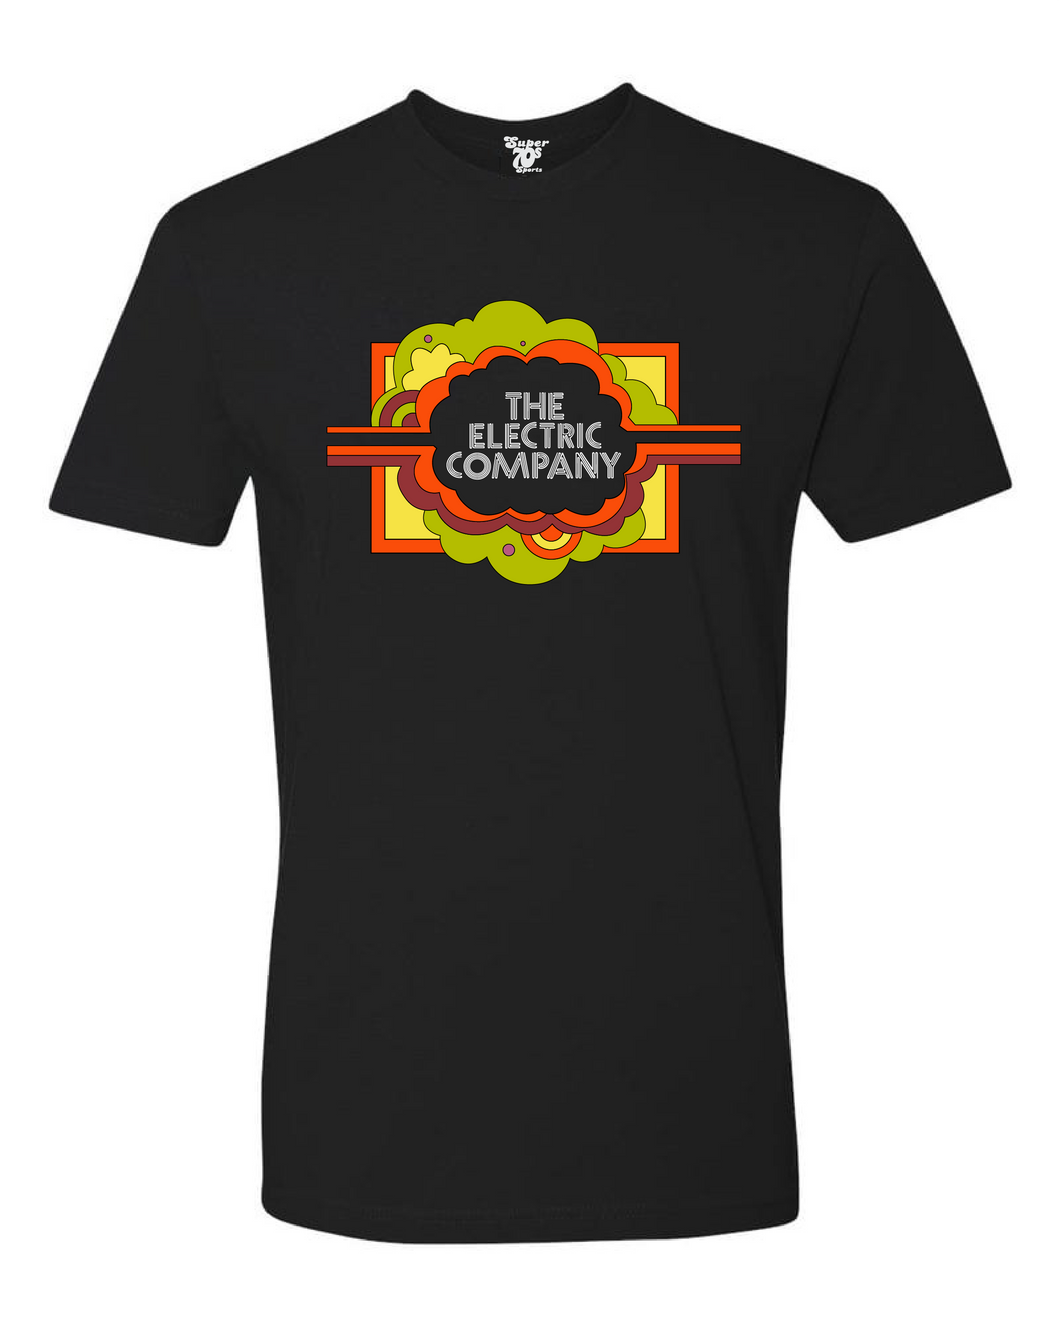 The Electric Company Tee